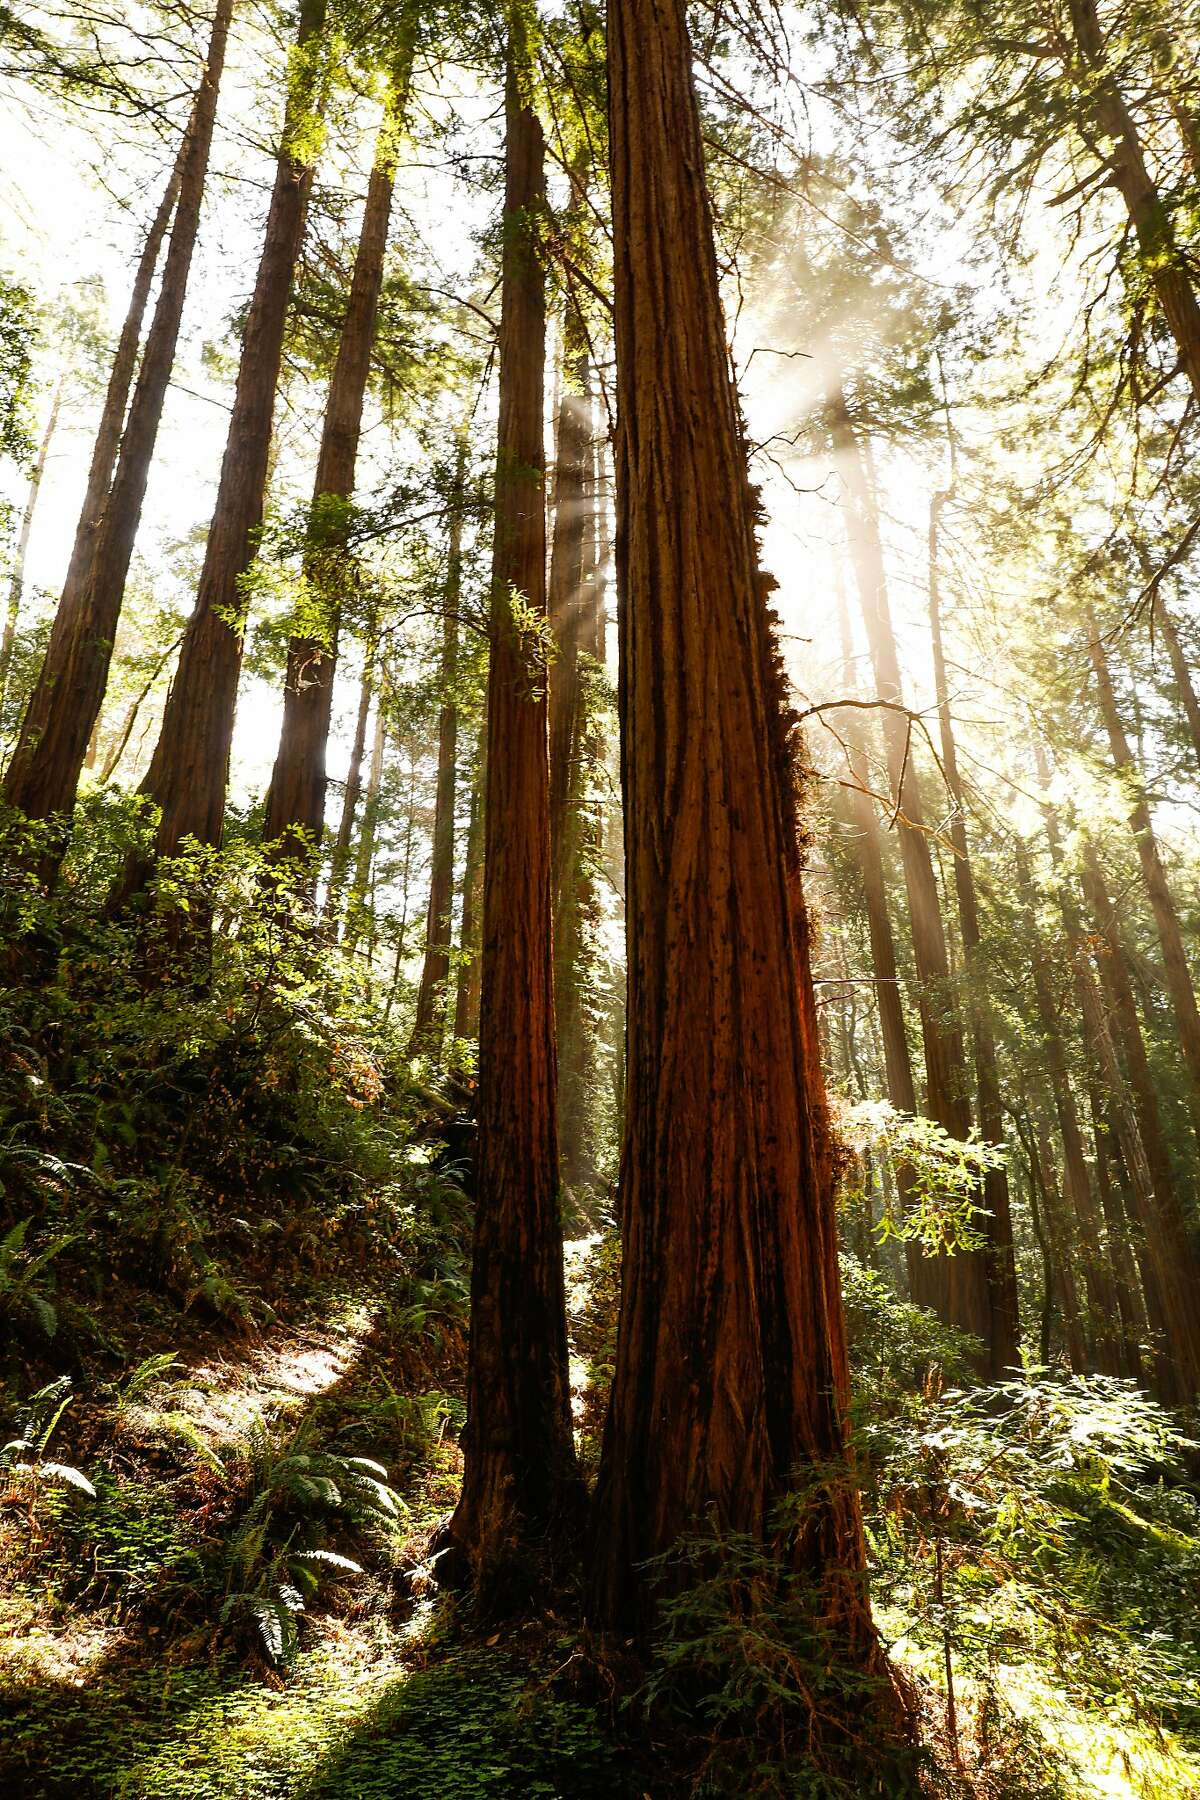 The sun peers through Redwood trees at Muir Woods in Mill Valley, California, on Monday, April 22, 2019.